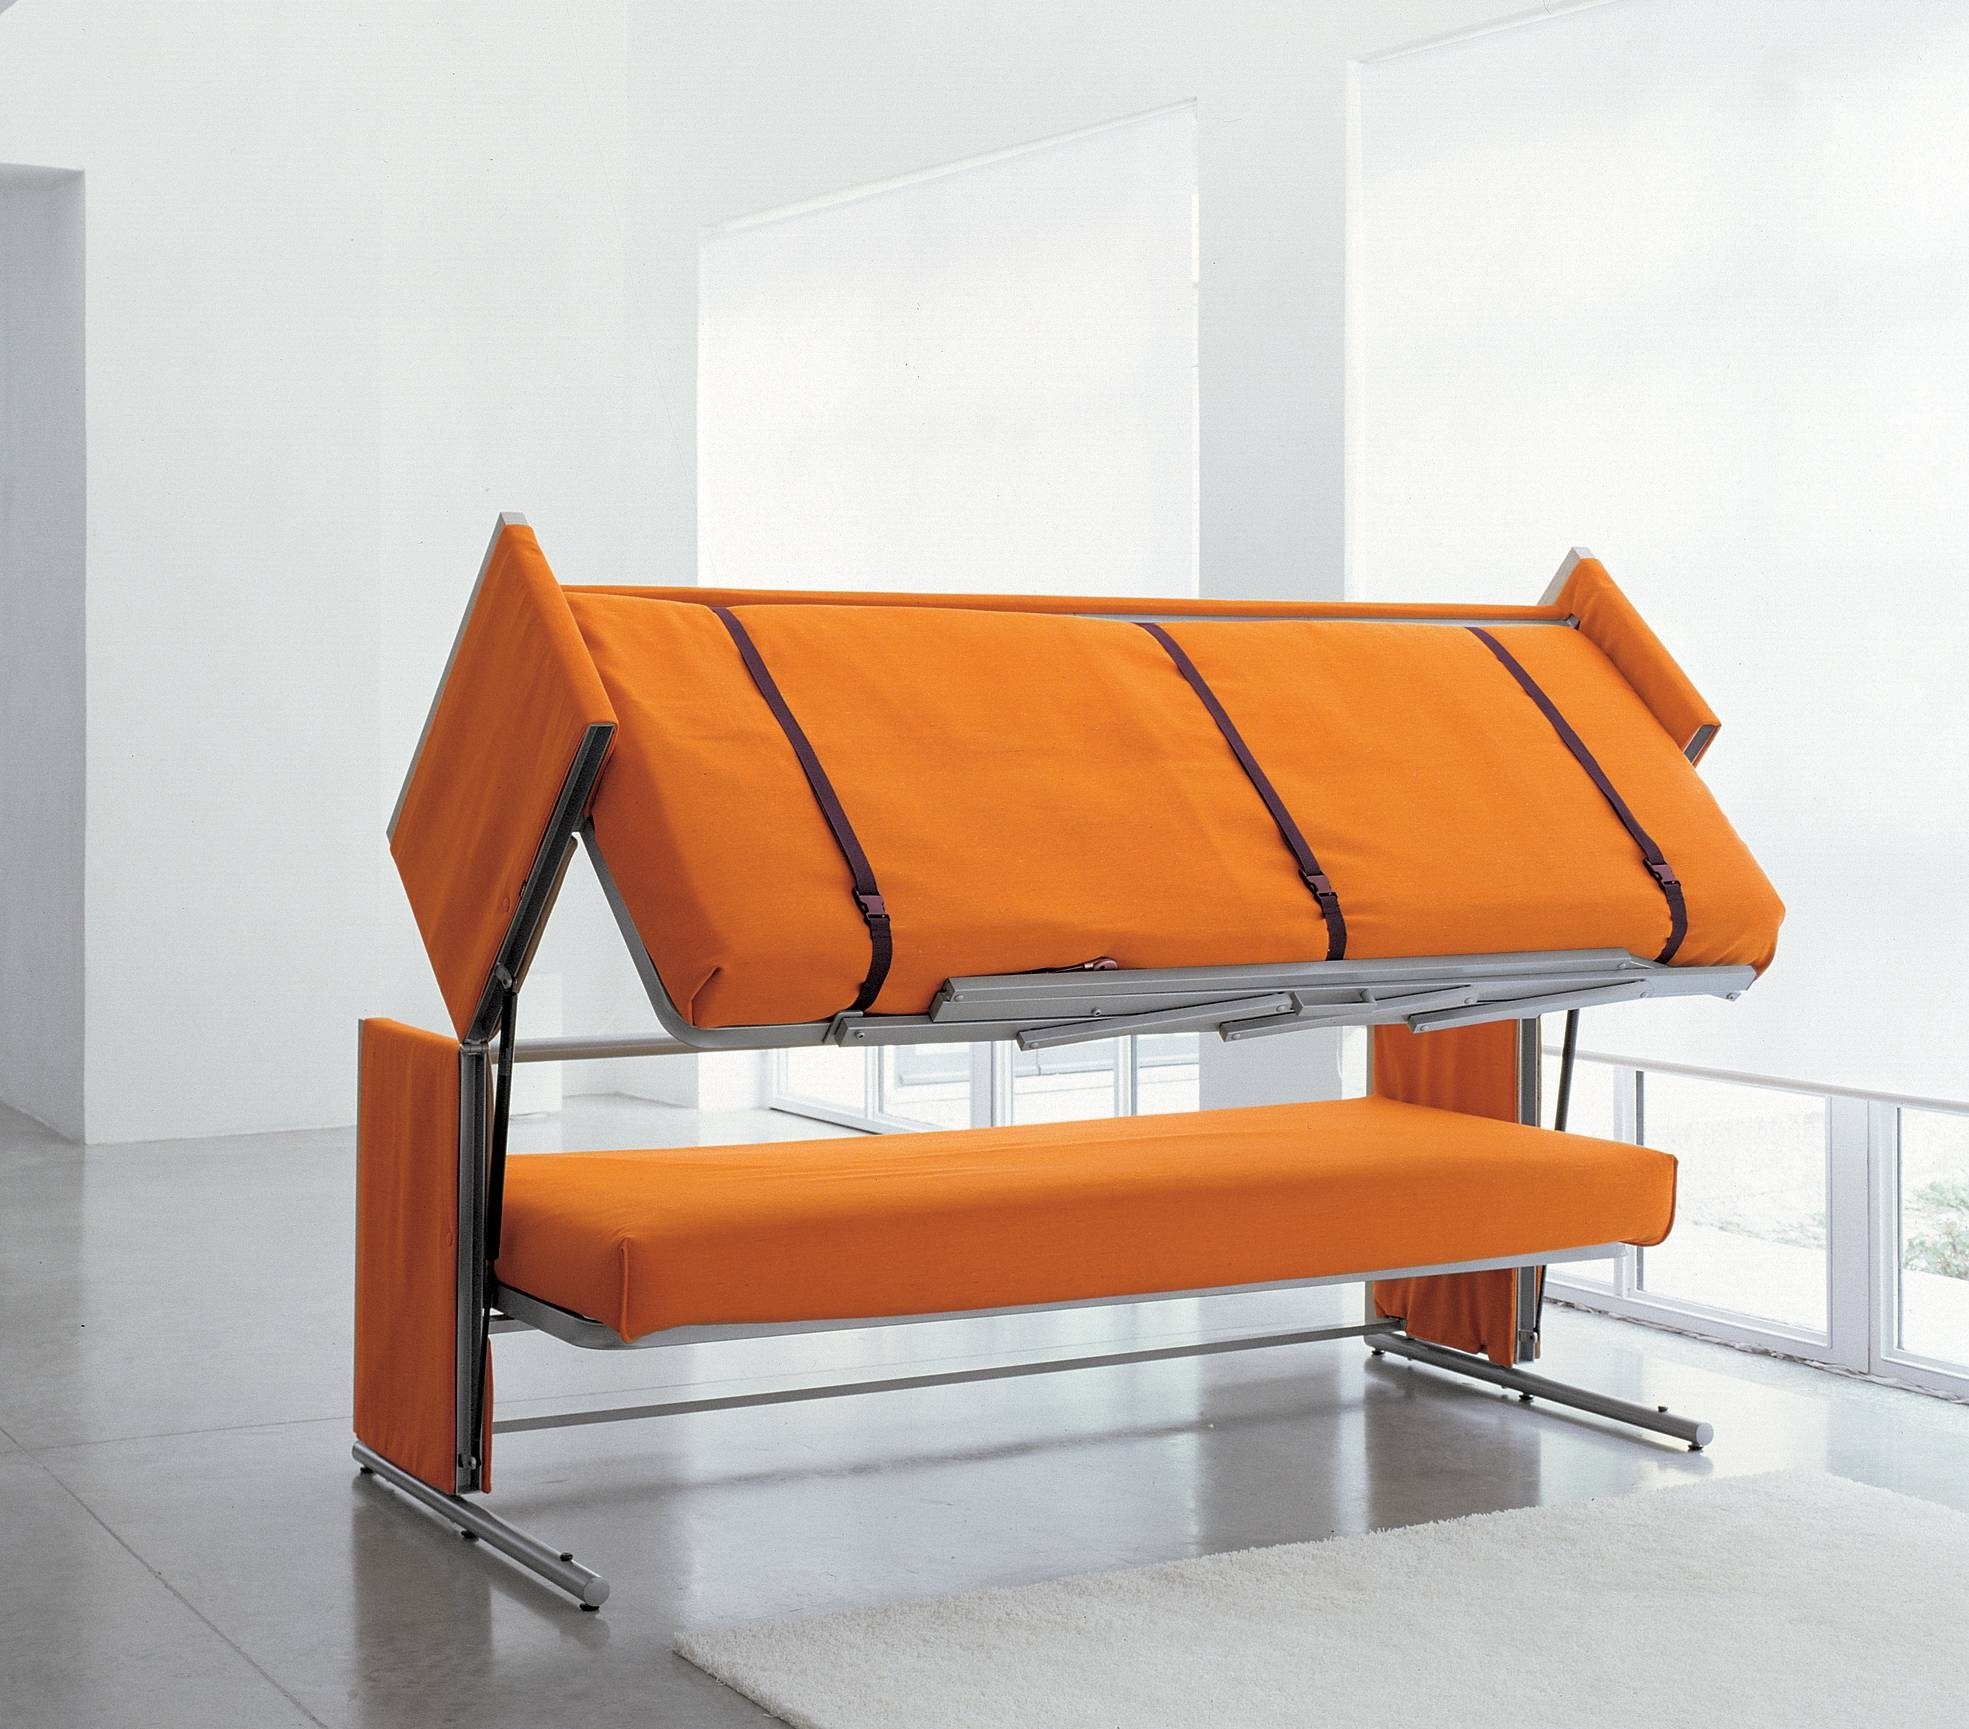 Sofa Bunk Bed Space Saving Furniture Idea - Home Improvement pertaining to Sofas Converts to Bunk Bed (Image 12 of 15)